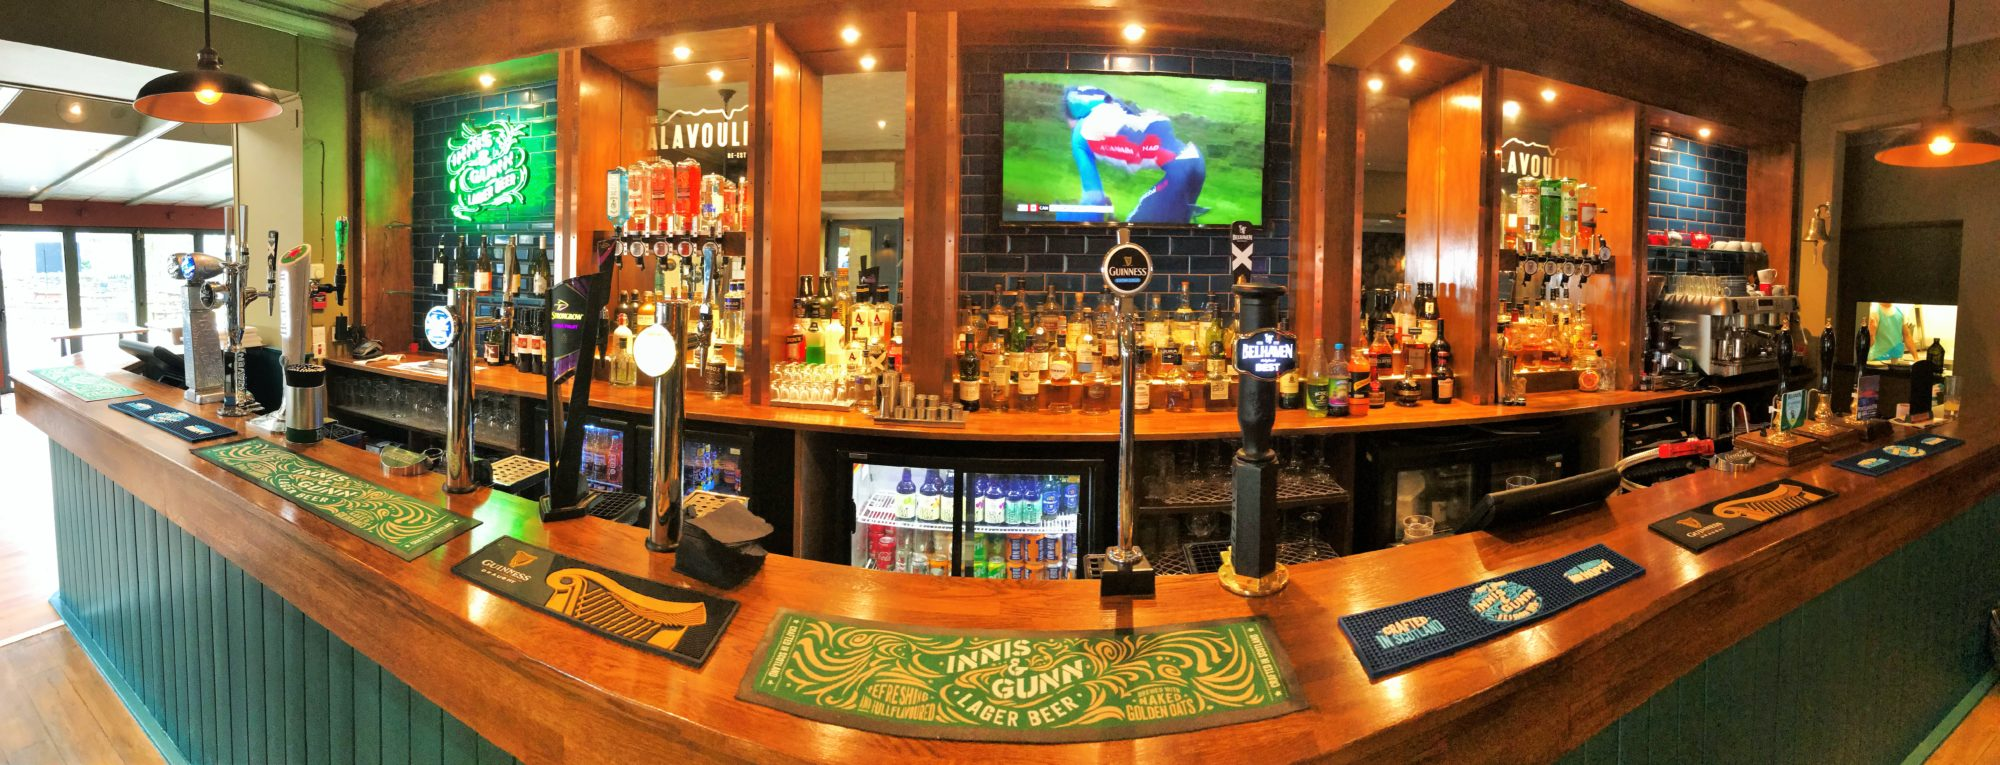 the bar at The Balavoulin Aviemore bar with food rooms sports